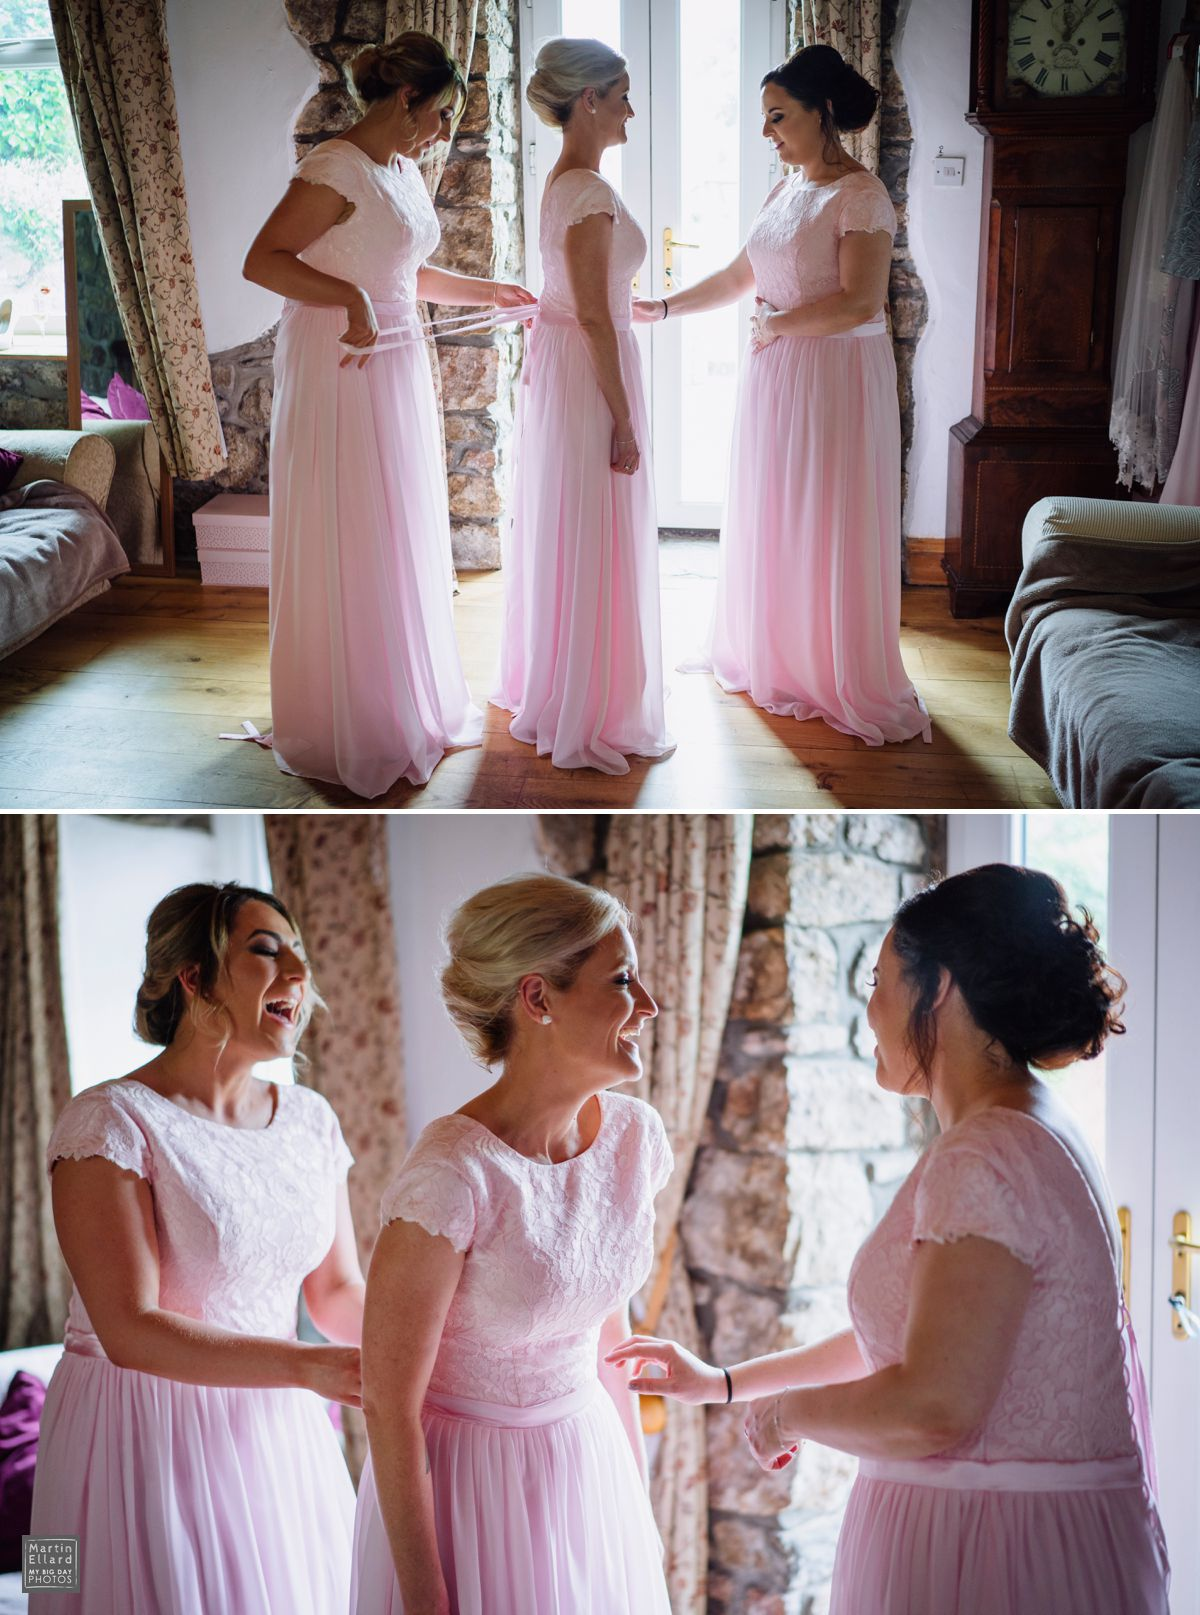 choosing bridesmaid dresses in pink